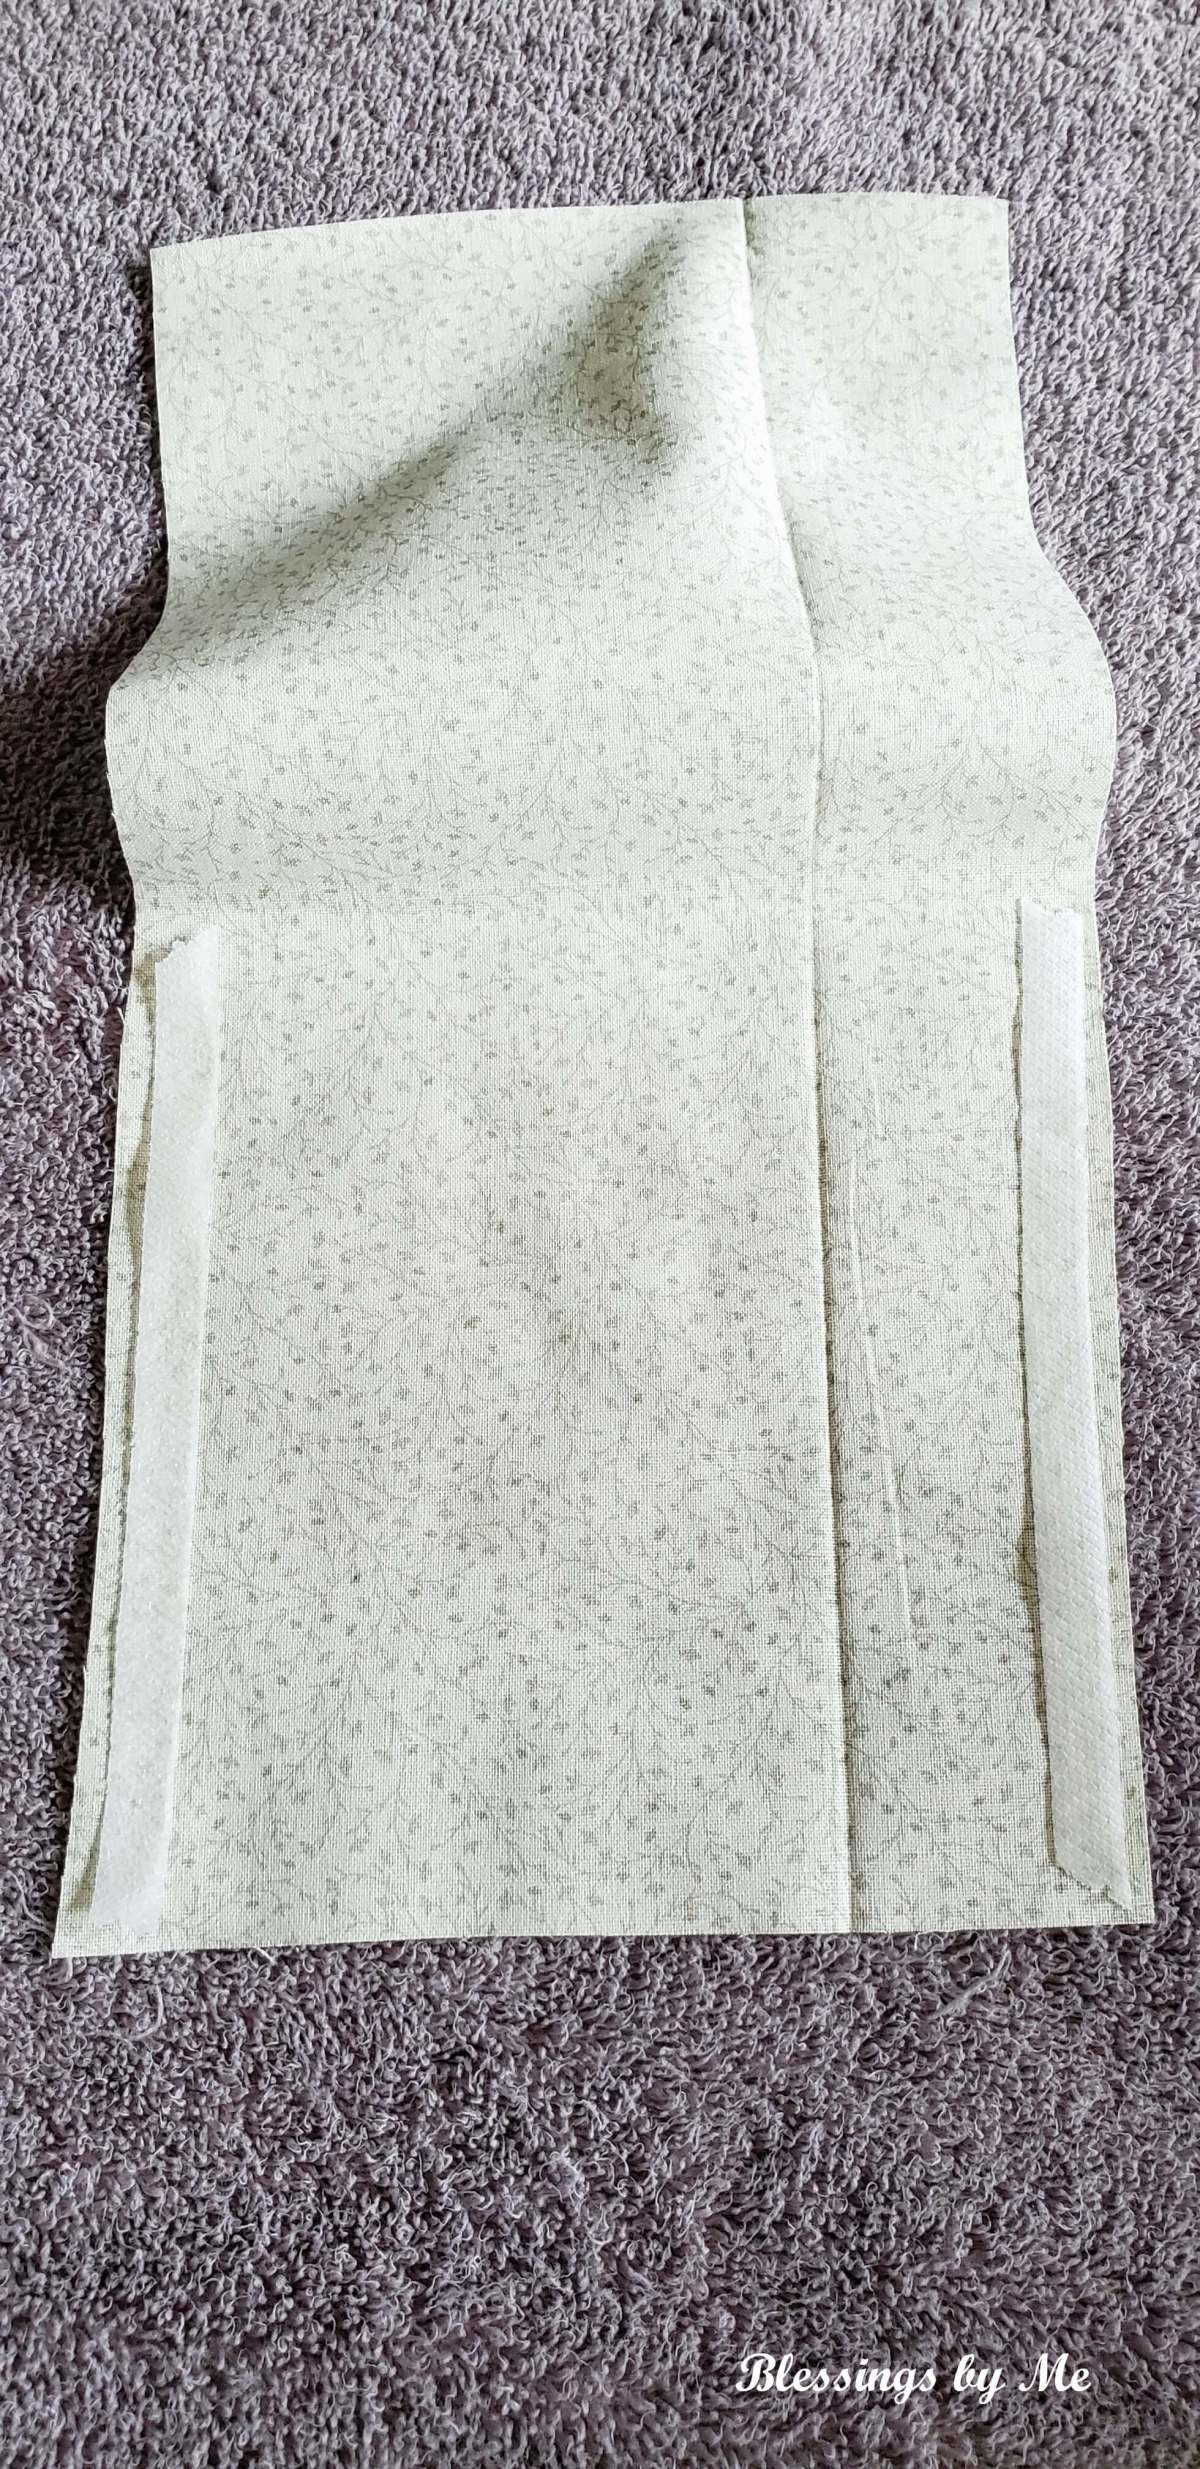 DIY No Sew Lavender Scented Drawer Sachet step 1: fold fabric in half. Place hem tap on both sides.